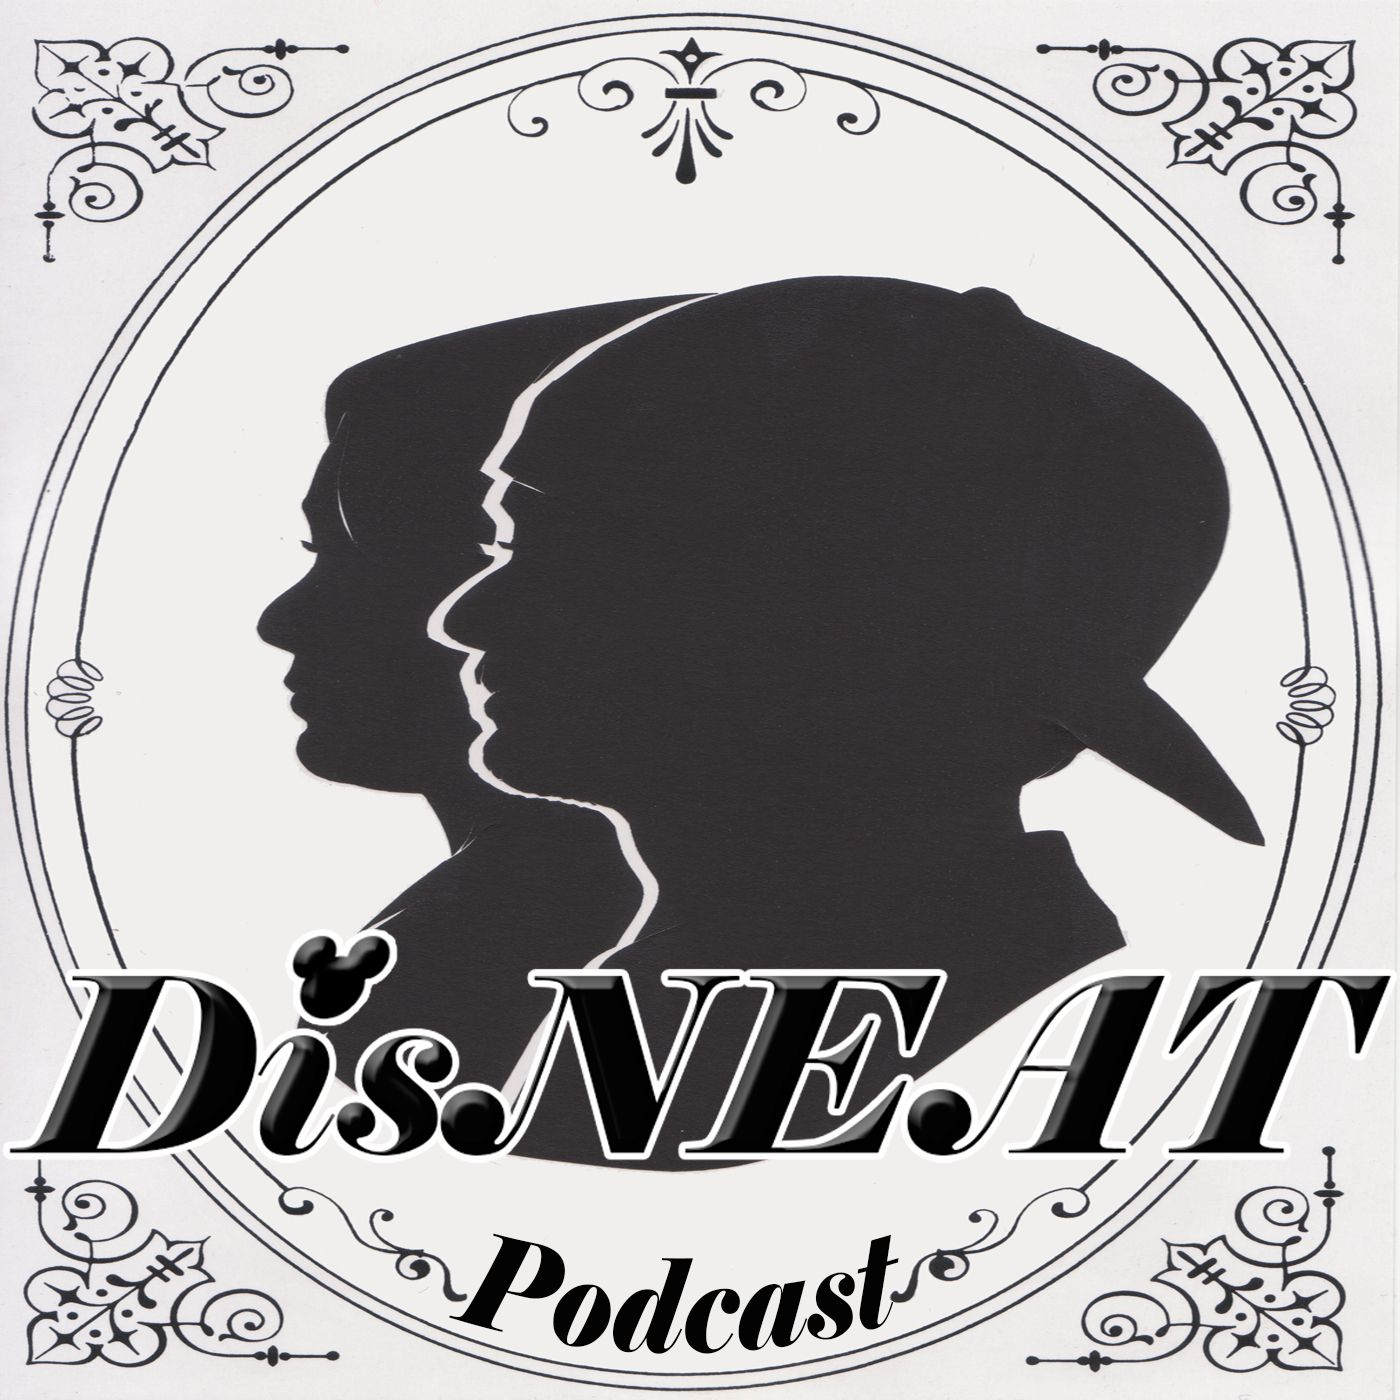 DisNEAT Podcast